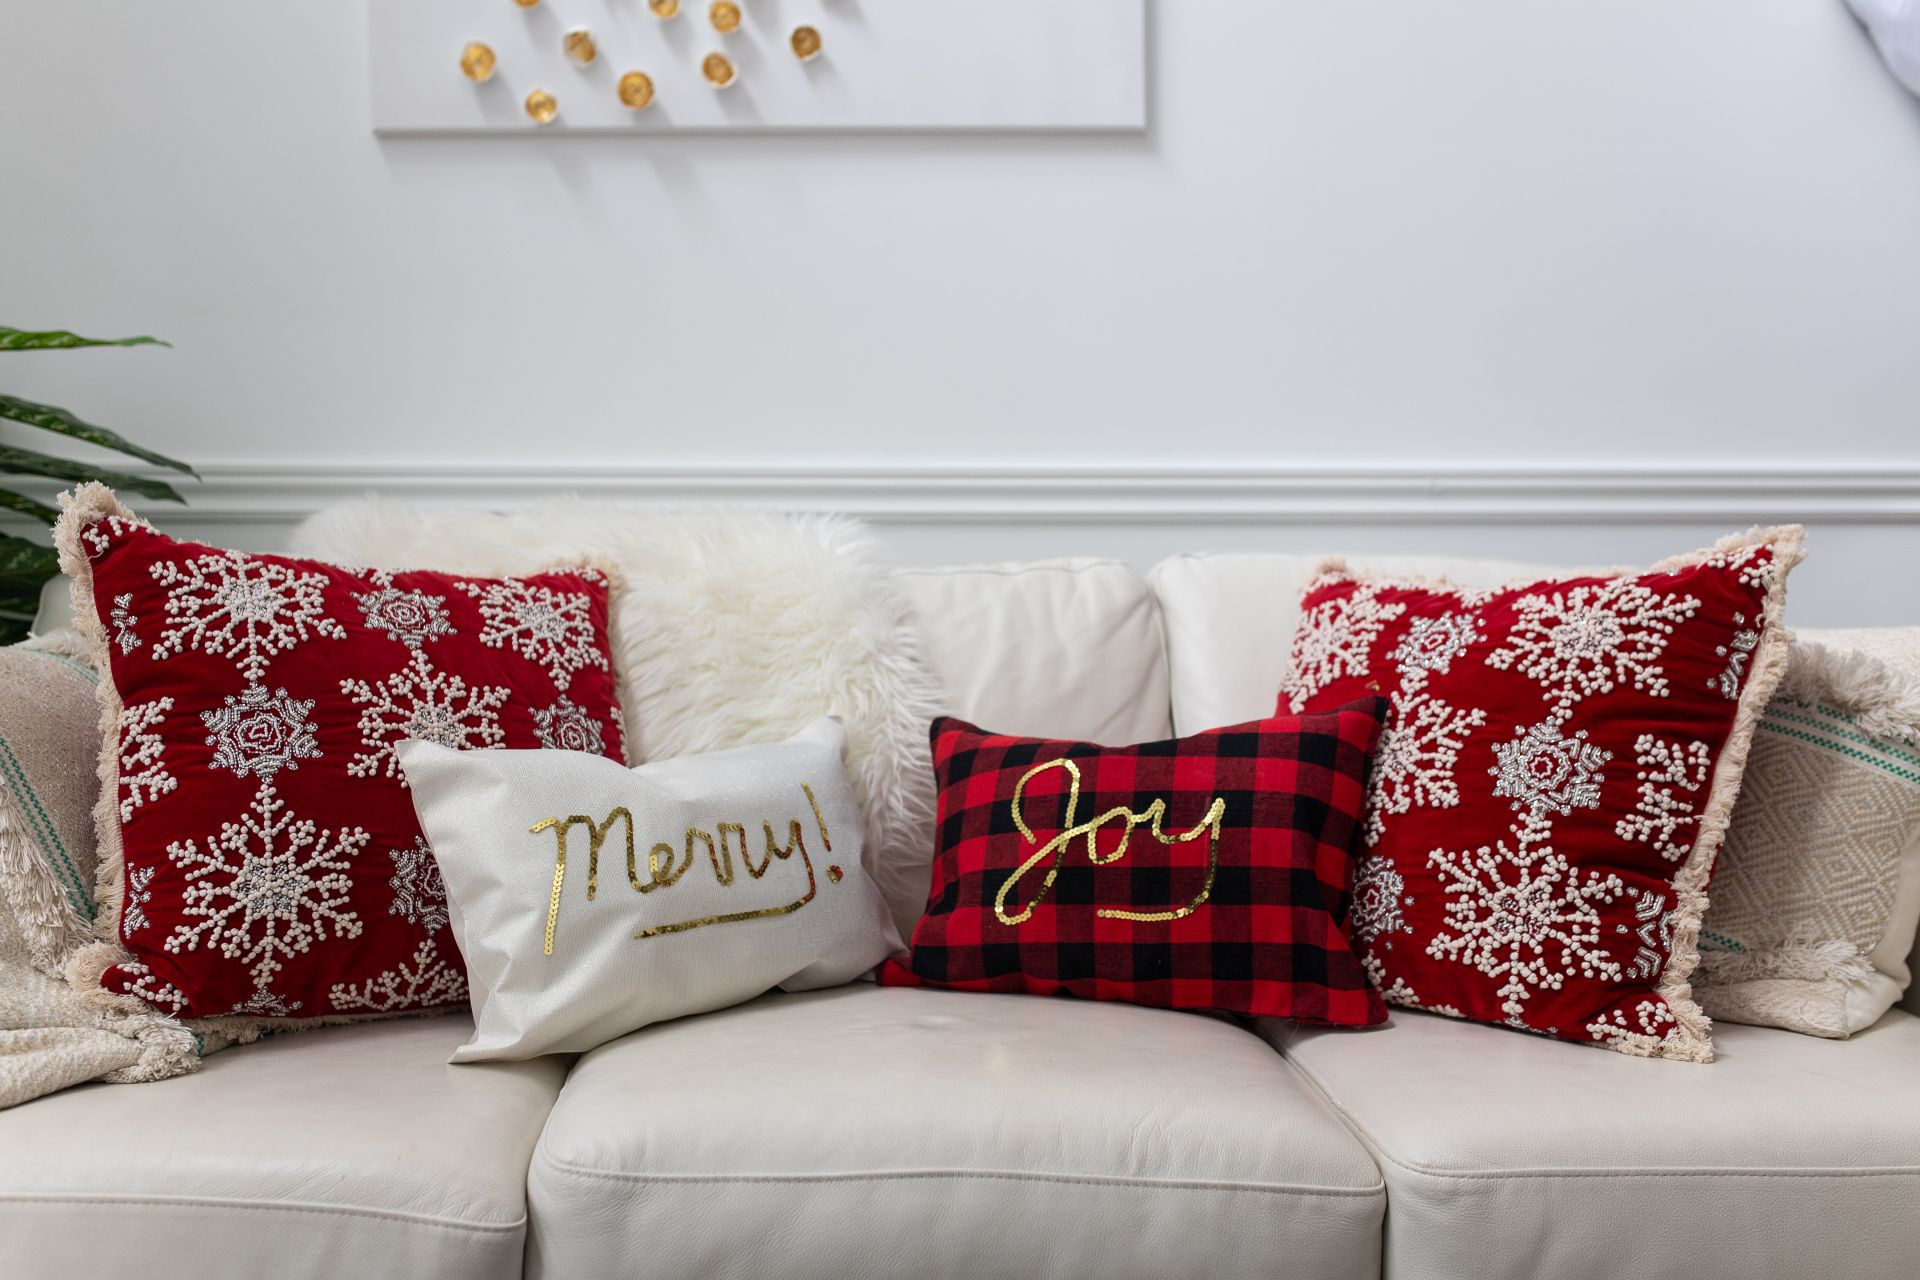 Diy Christmas Placemat Pillows Tutorial Sincerely Miss J